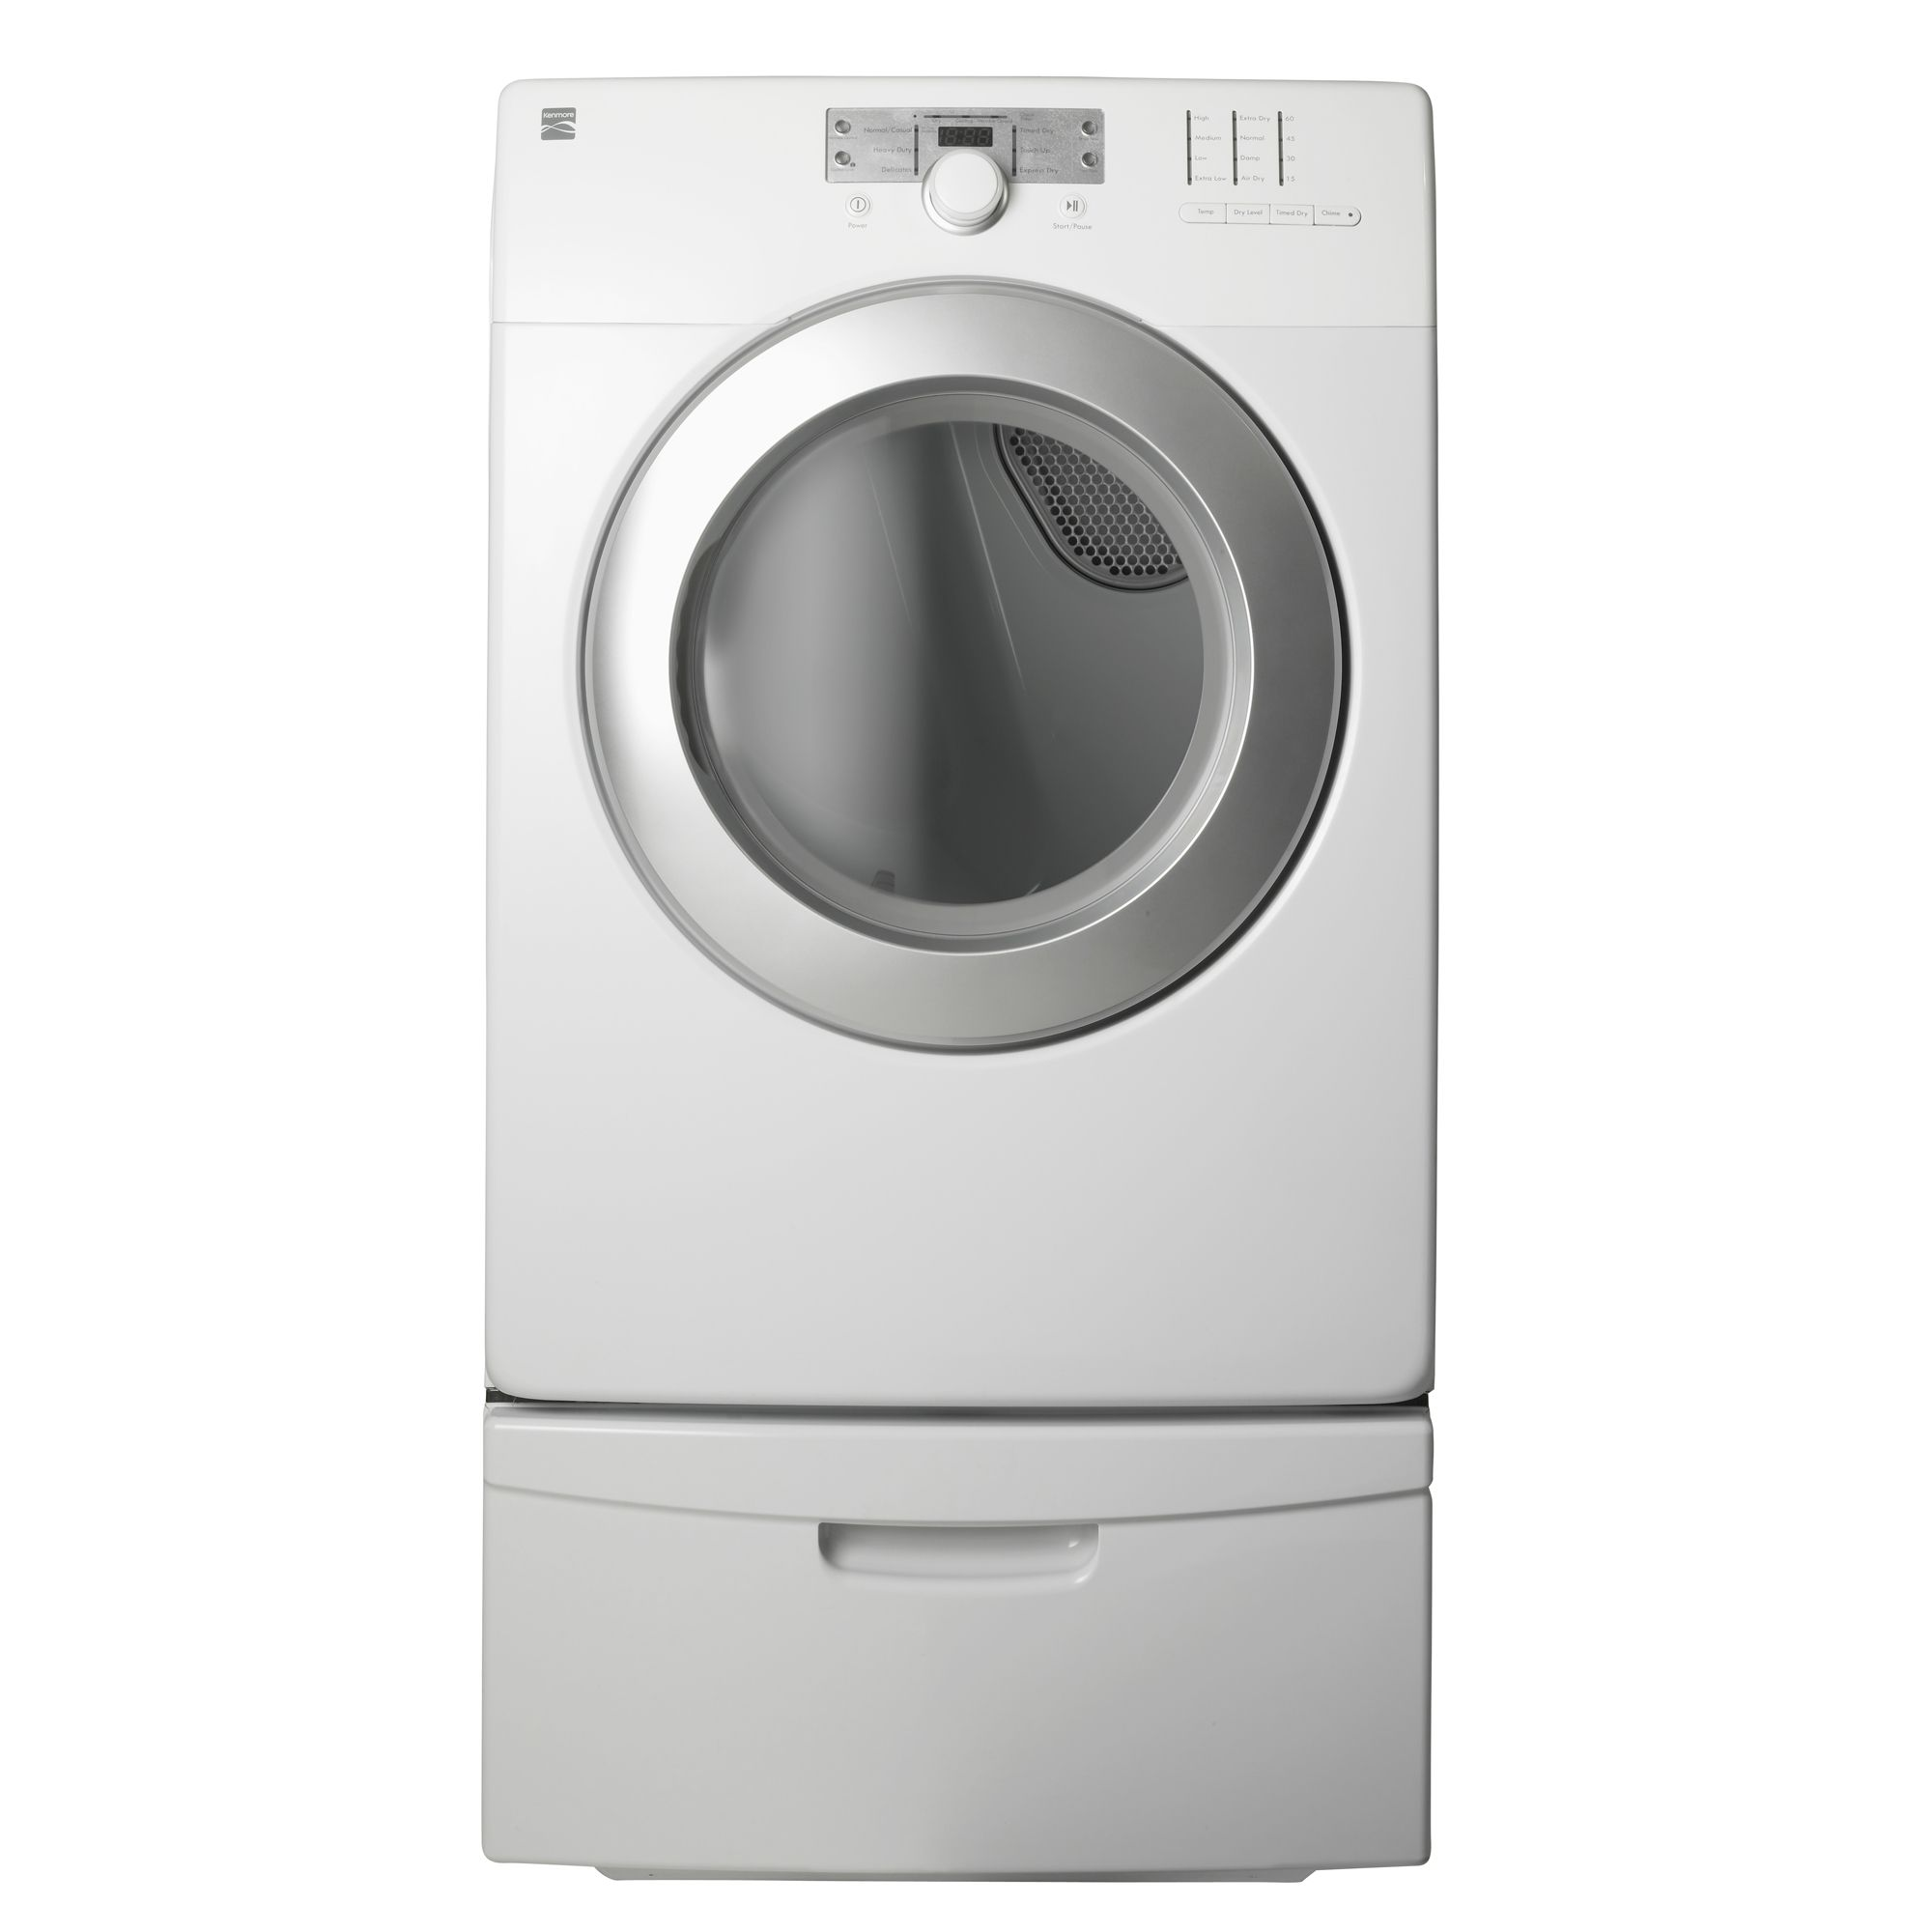 Kenmore 7.3 cu. ft. Gas Dryer